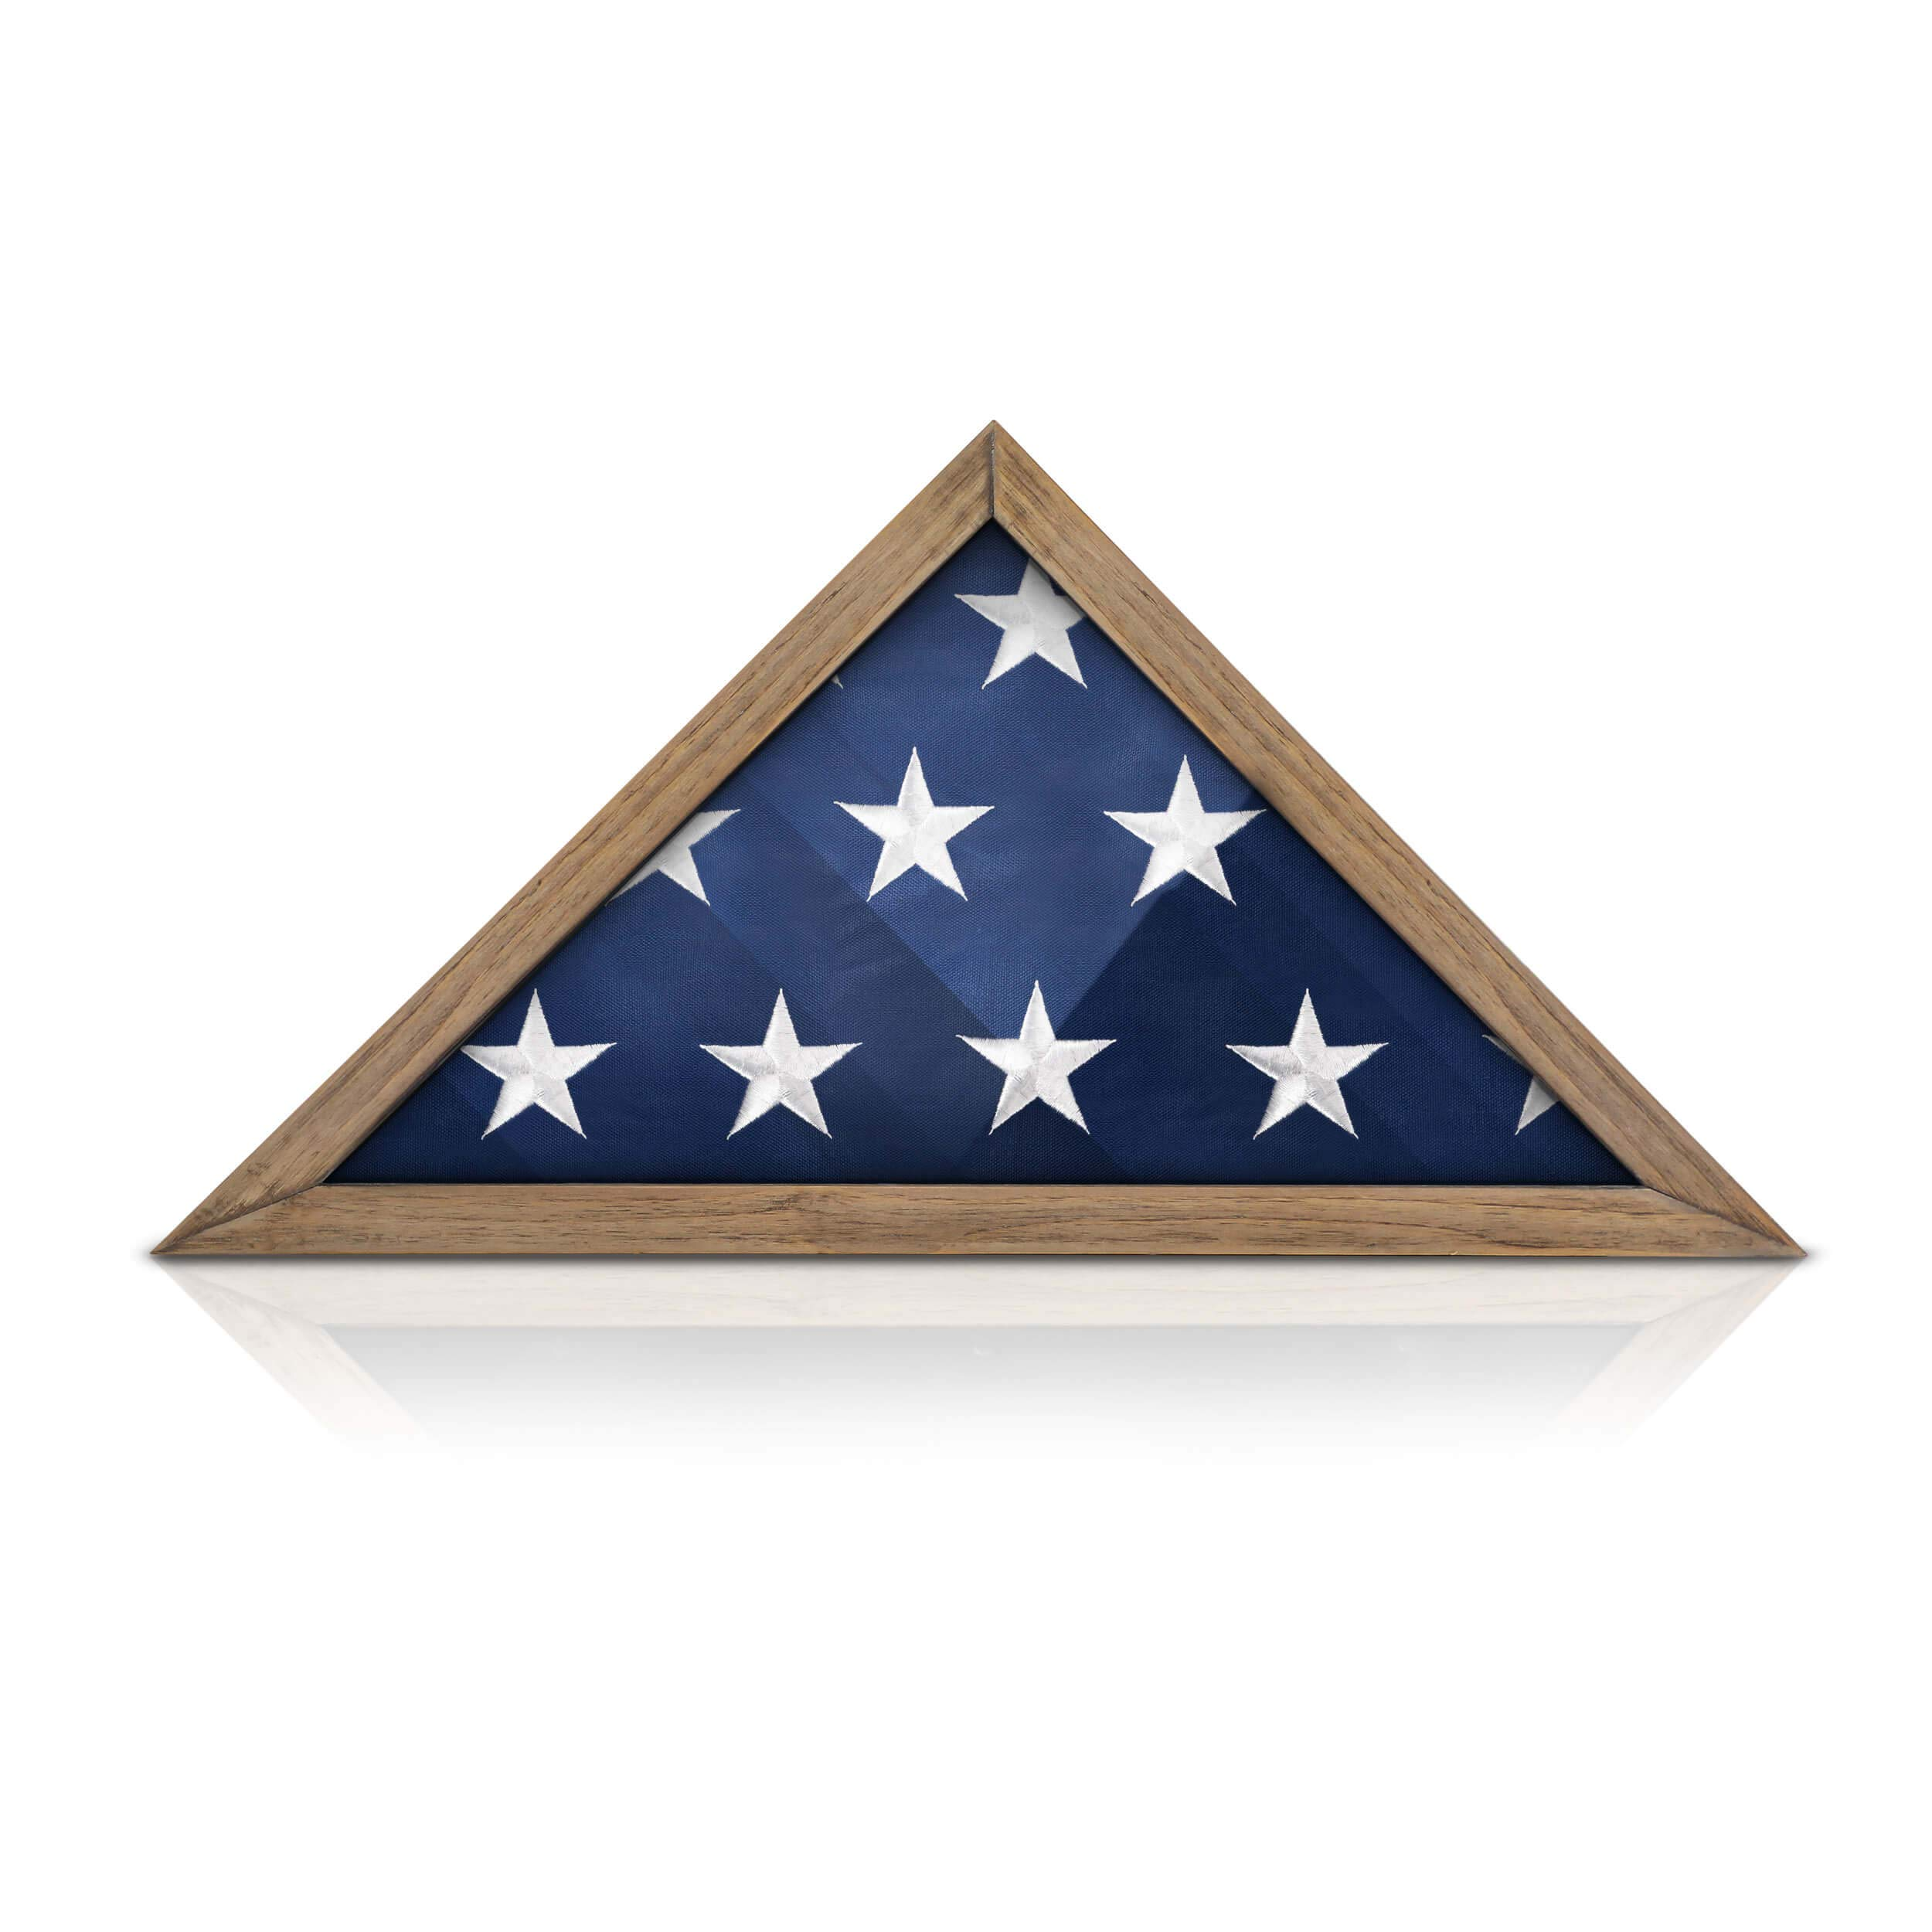 Rustic Flag Case - SOLID WOOD Military Flag Display Case for 9.5 x 5 American Veteran Burial Flag, Wall Mounted Burial Flag Frame, - Flag Shadow Box to display folded flag. (Weathered Wood) by HBCY Creations (Image #4)